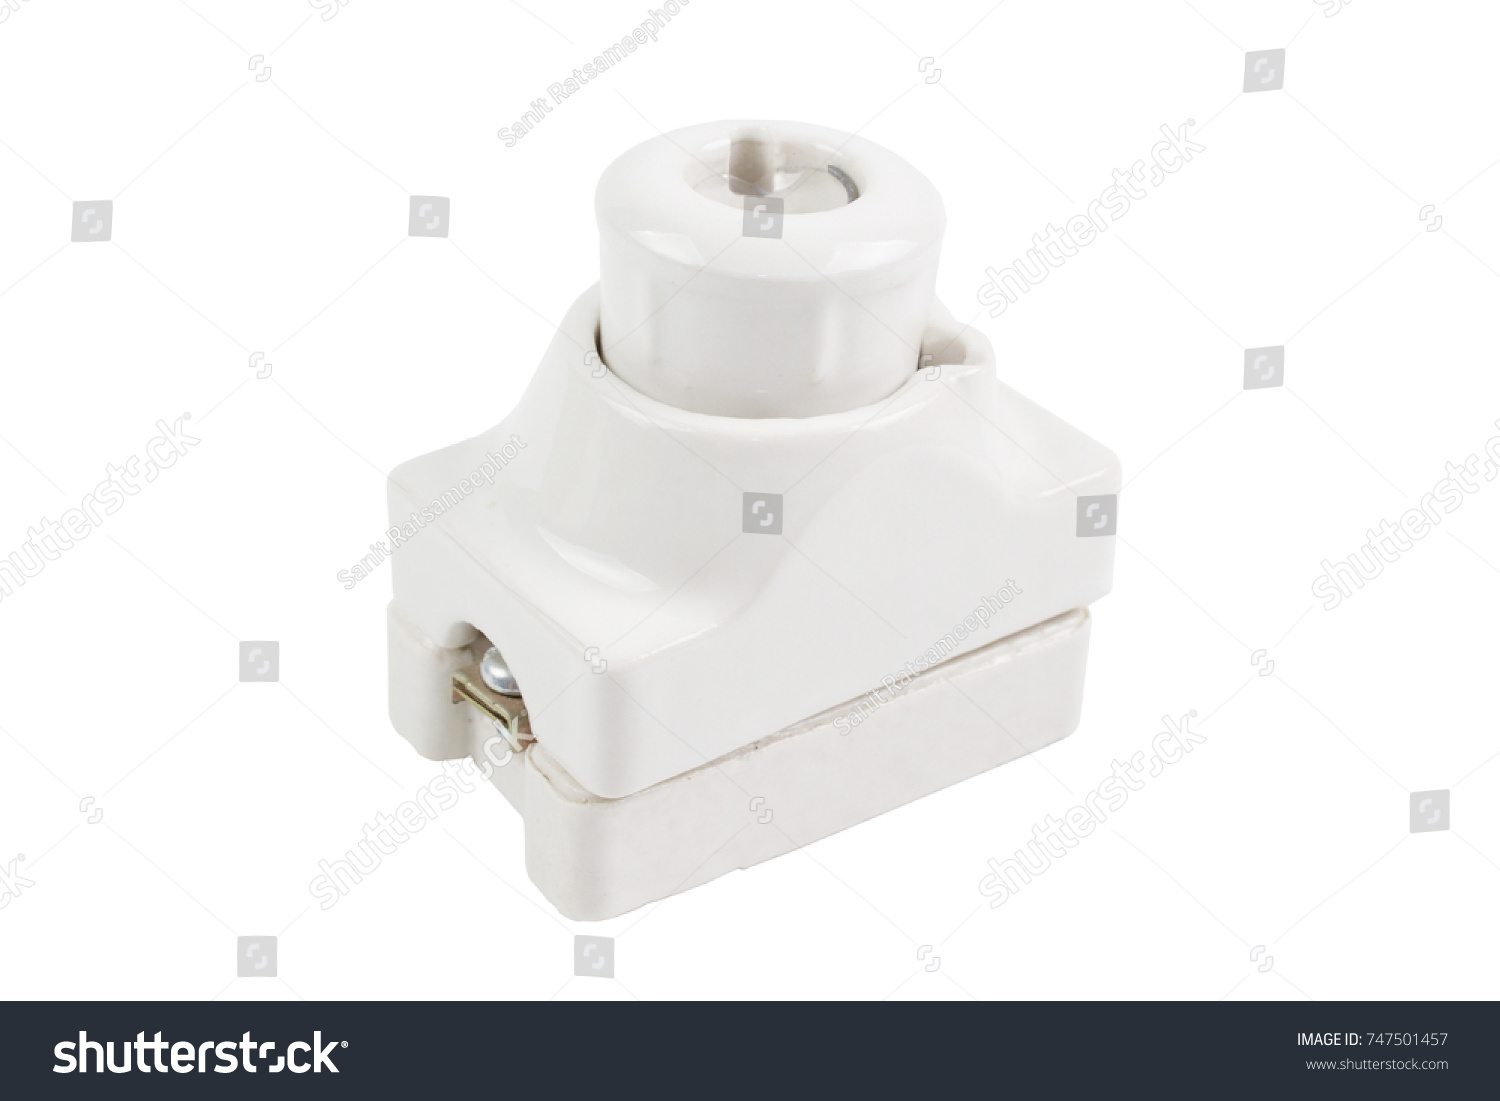 electrical cutout cartridge ceramic fuse holder stock photo safe to rh shutterstock com Plastic Fuse Cartridge Plastic Fuse Cartridge